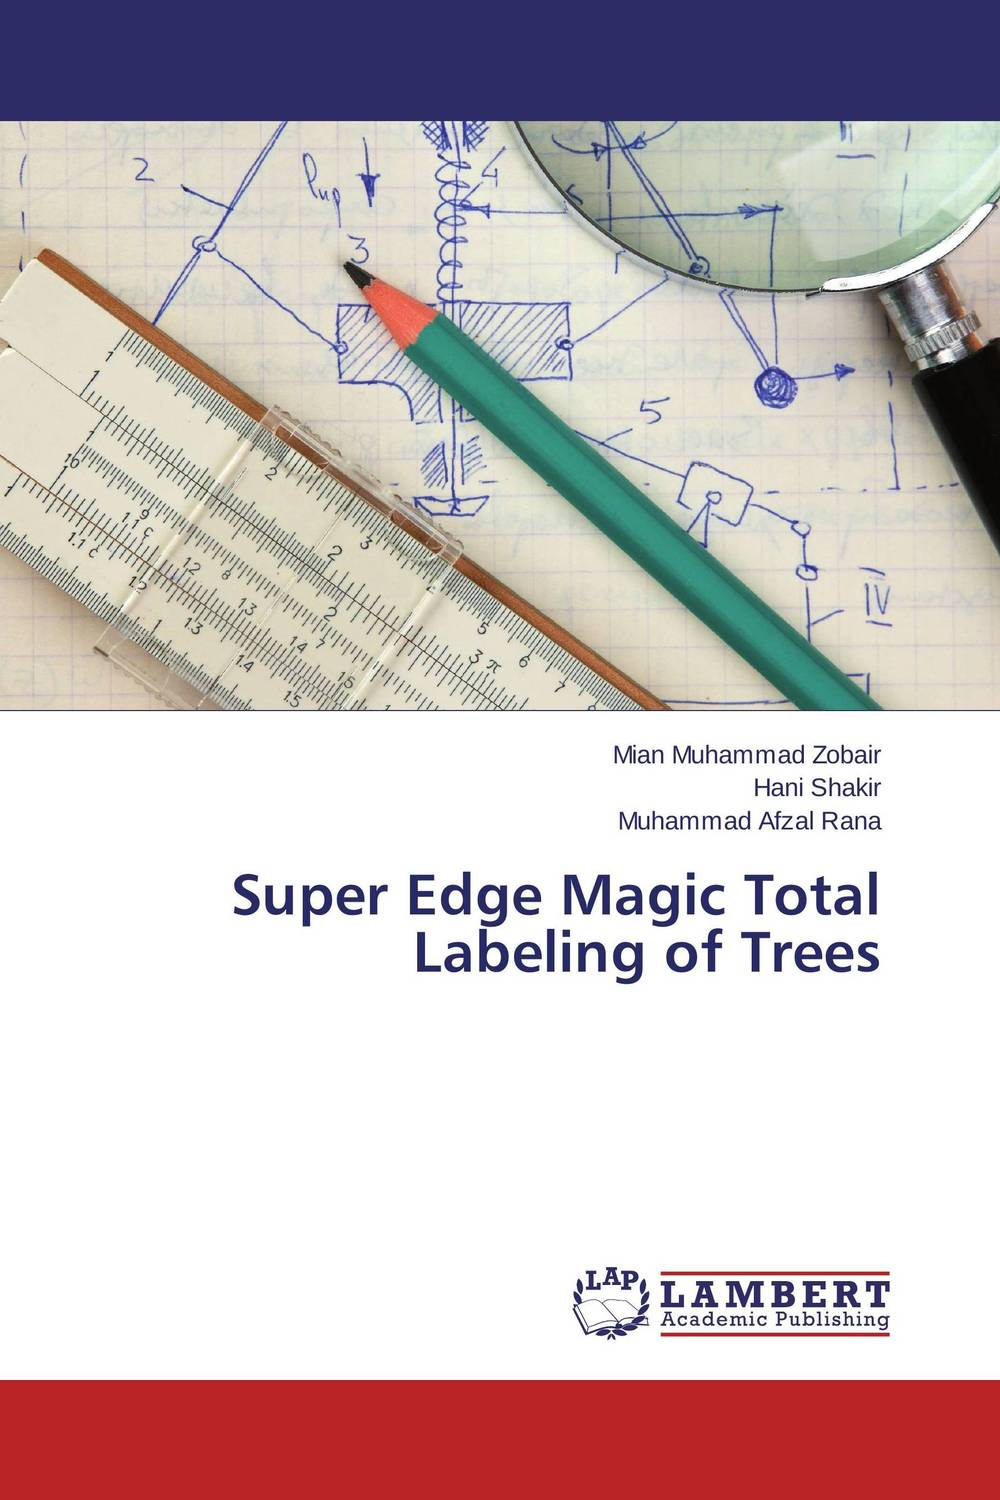 Super Edge Magic Total Labeling of Trees